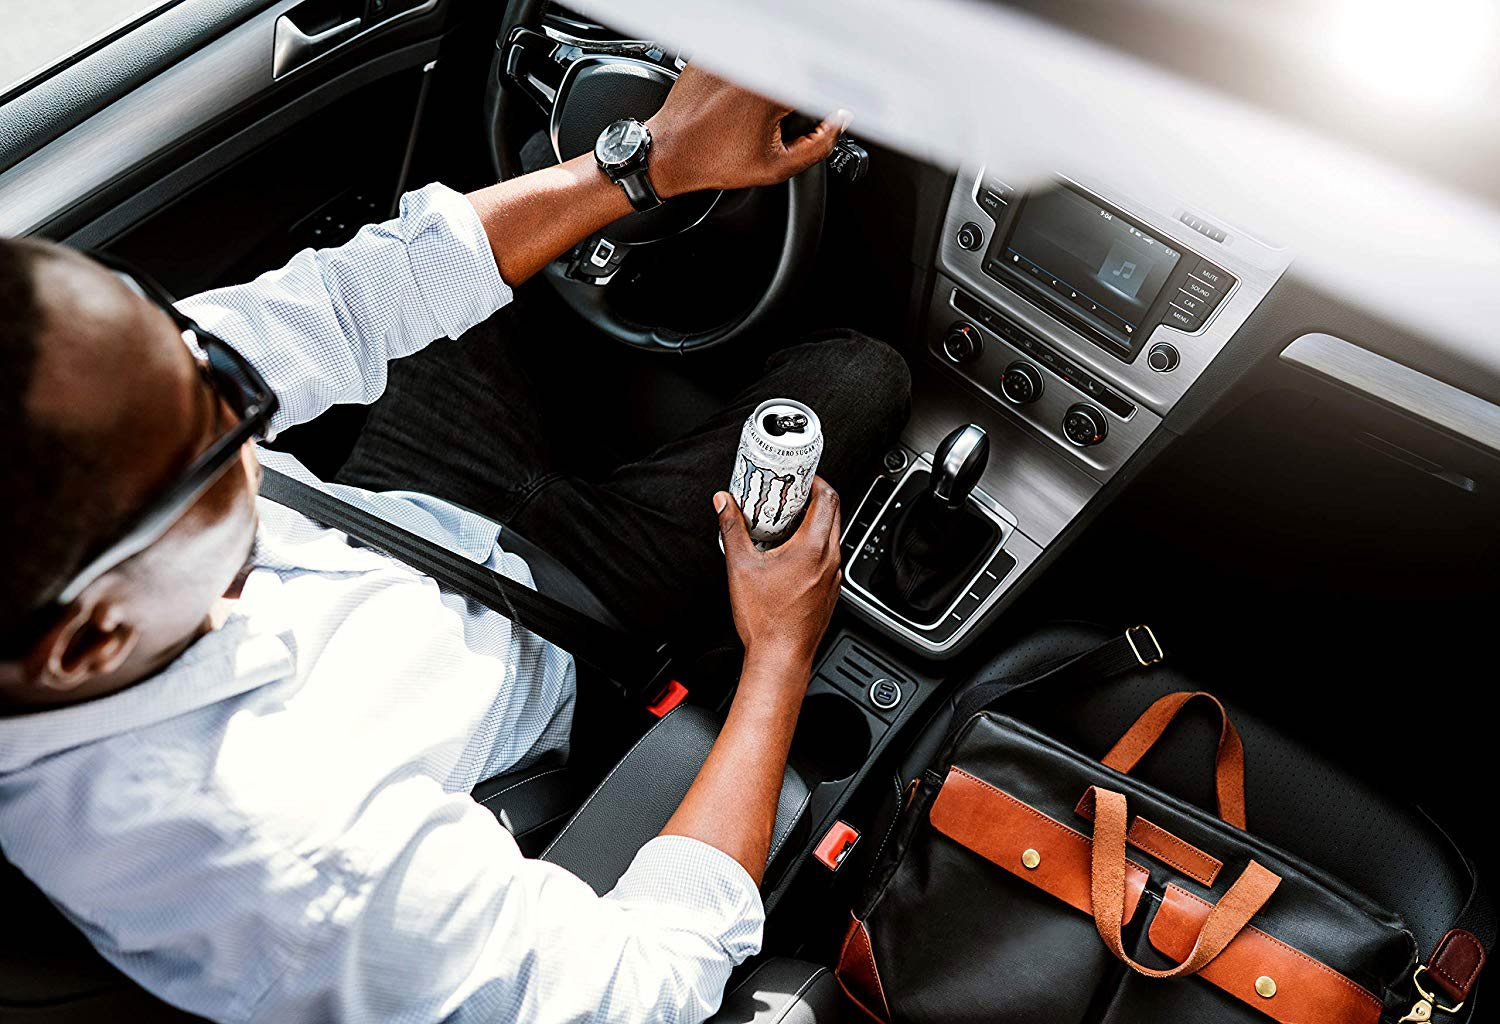 Man driving a car while drinking an energy drink